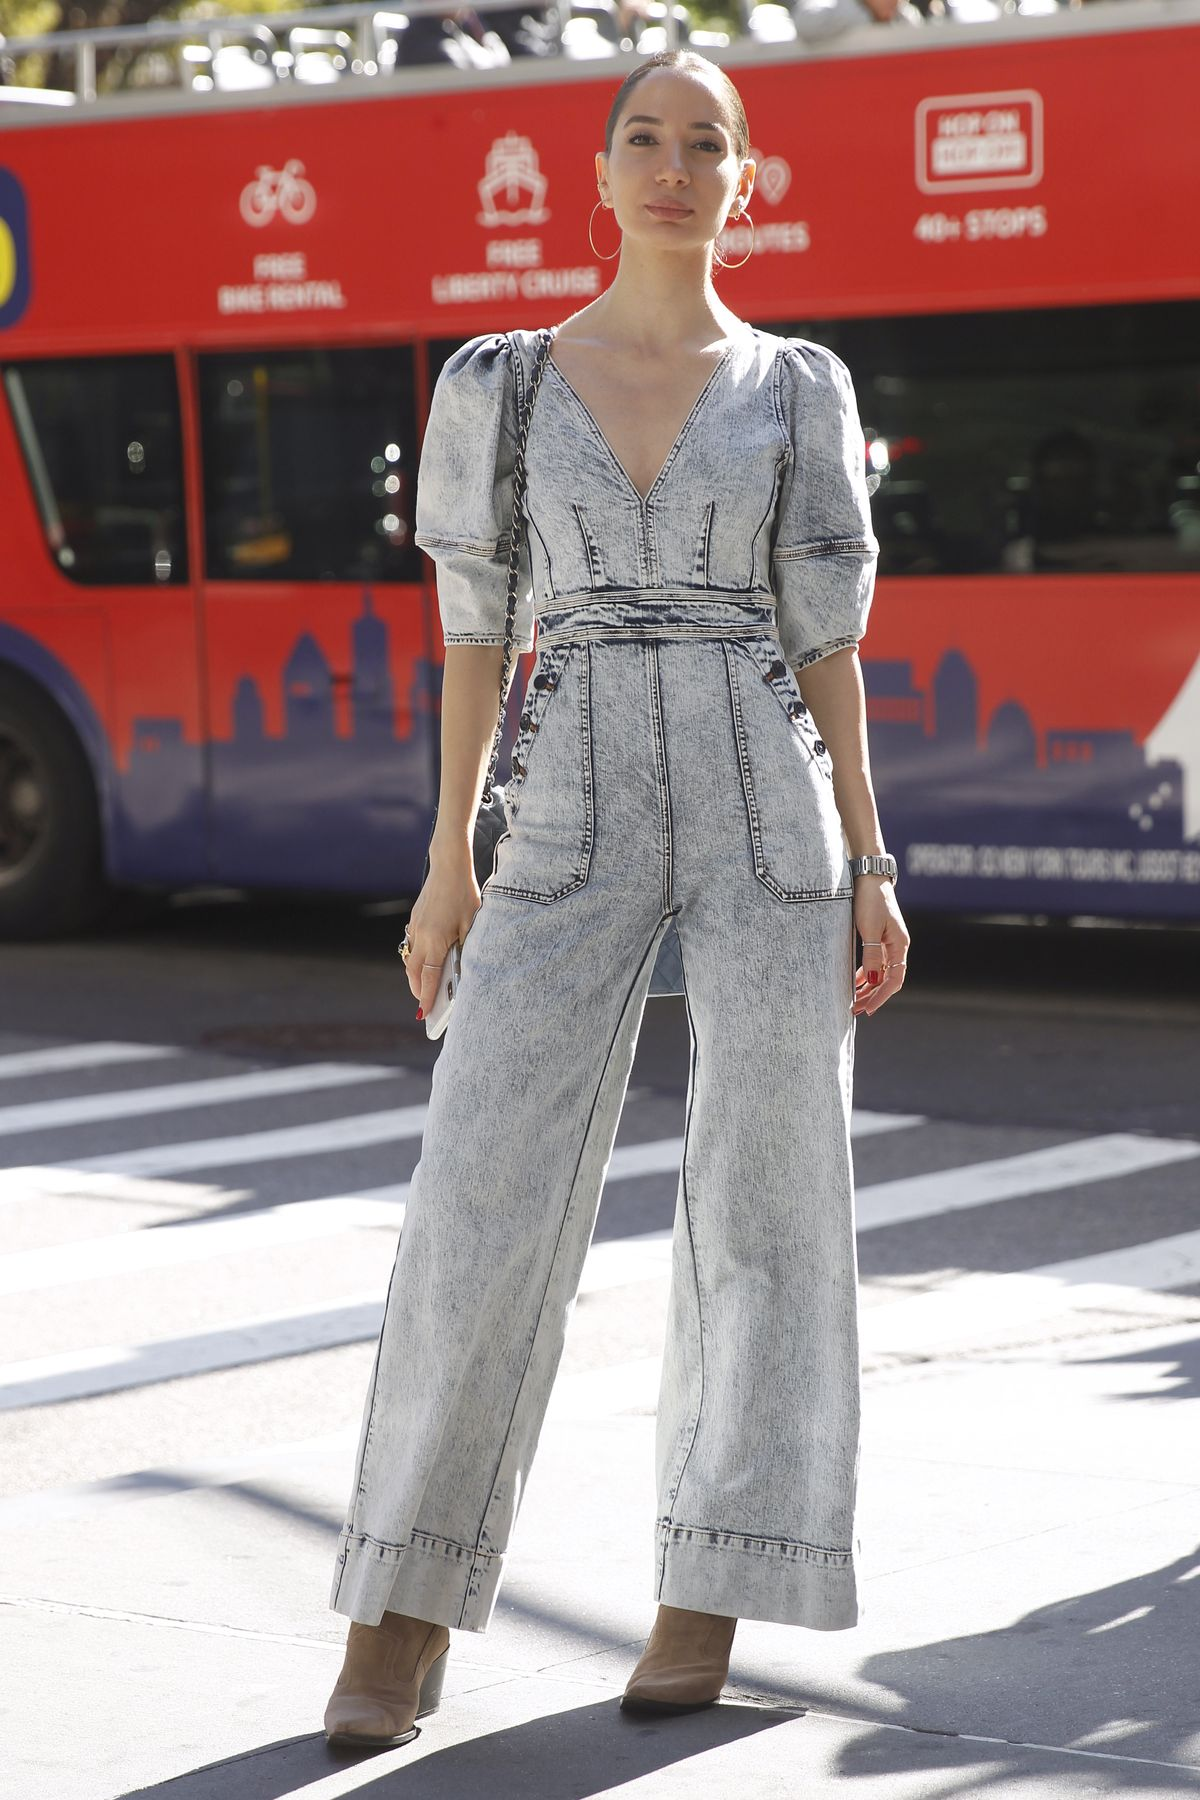 Street Style (ddp images)